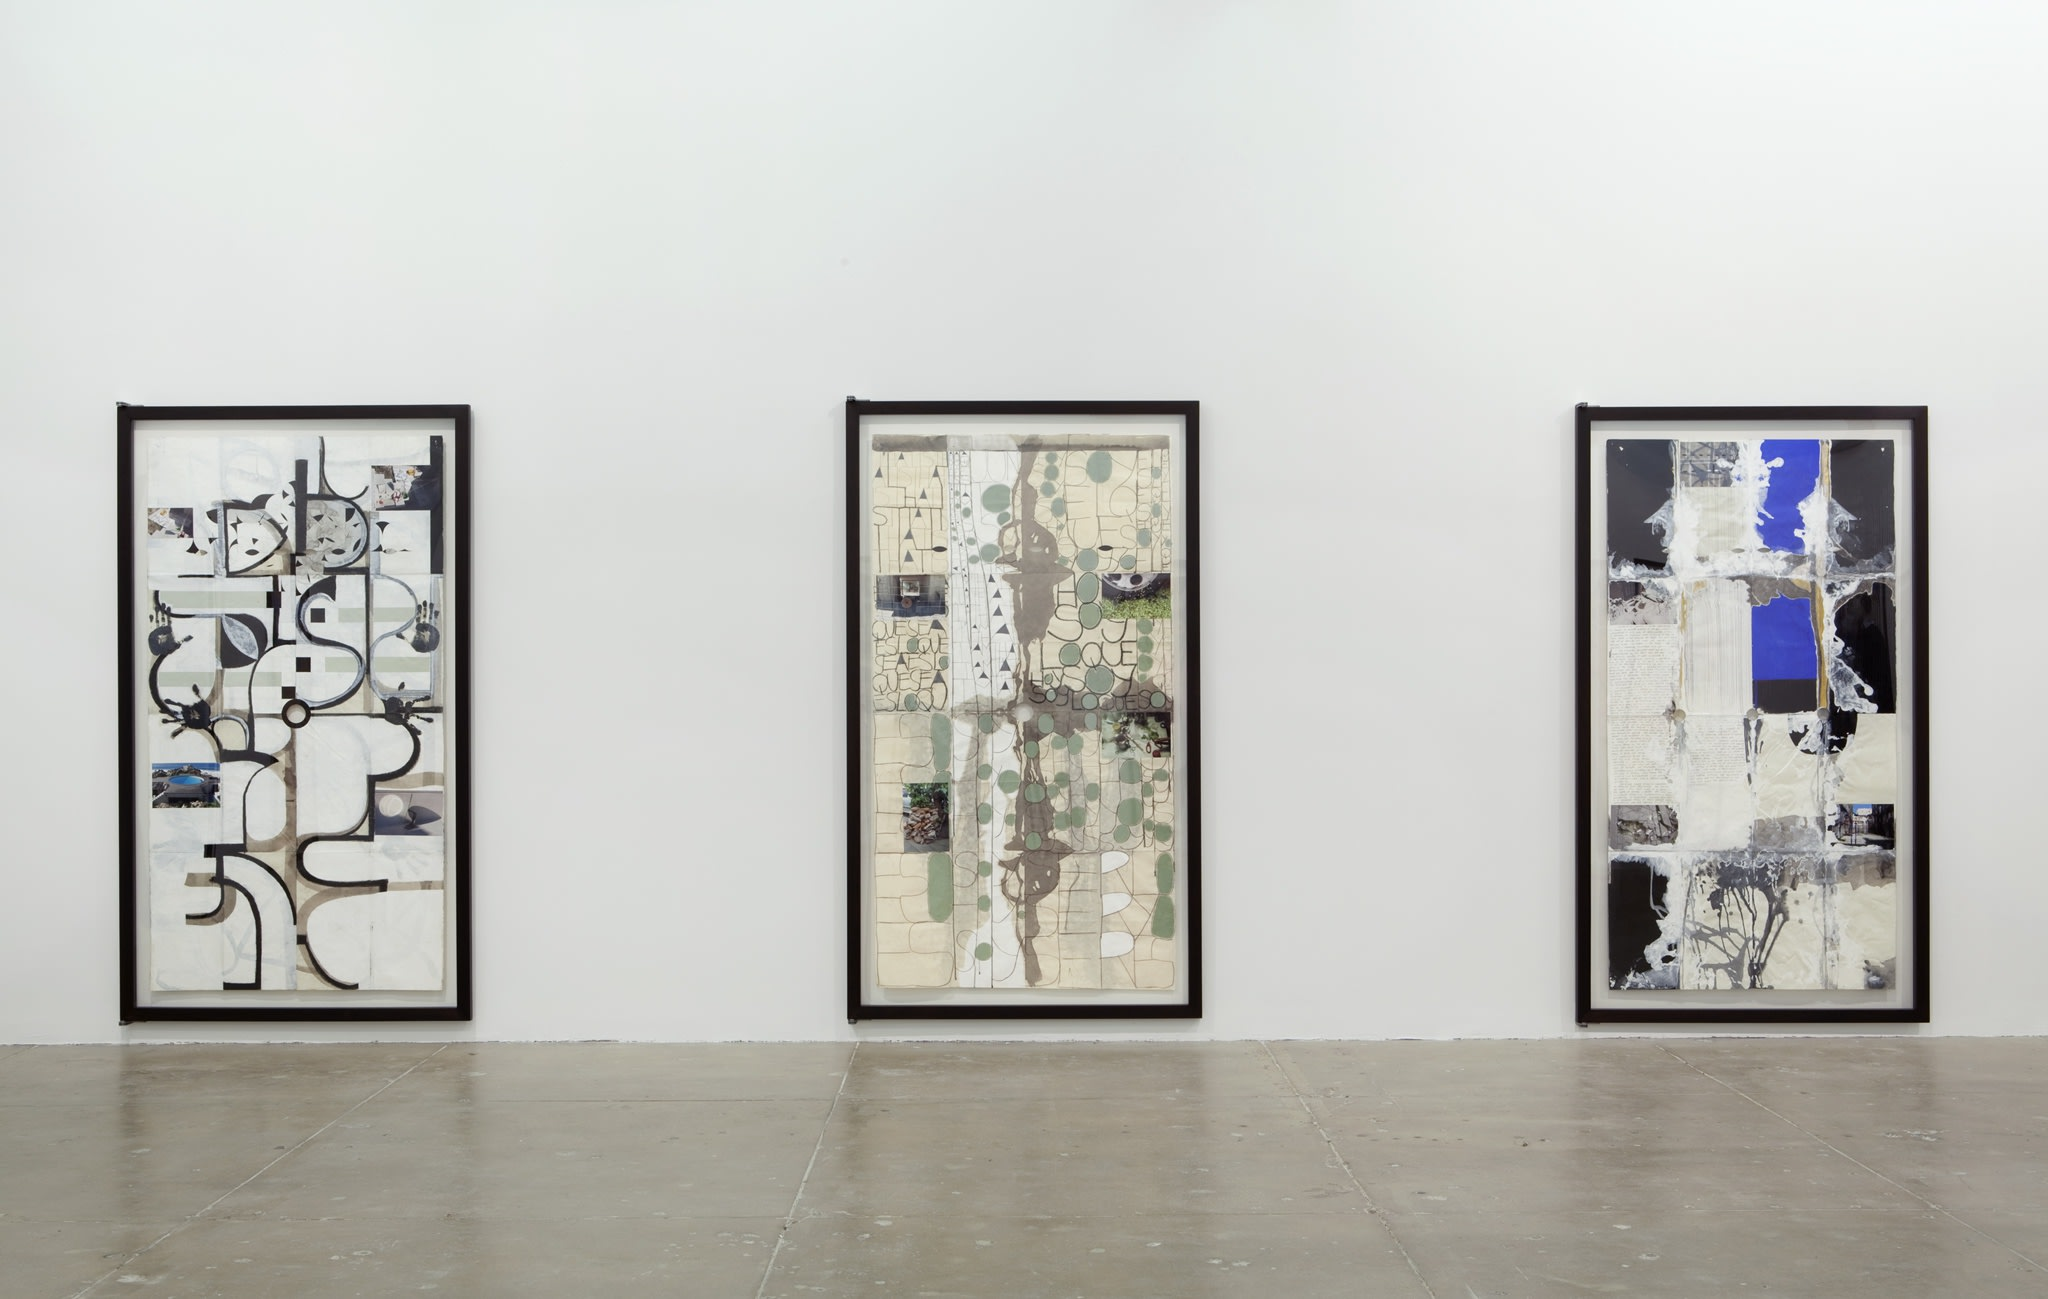 Three large vertical paintings of organic shapes and monochromatic colors hang on a white wall.